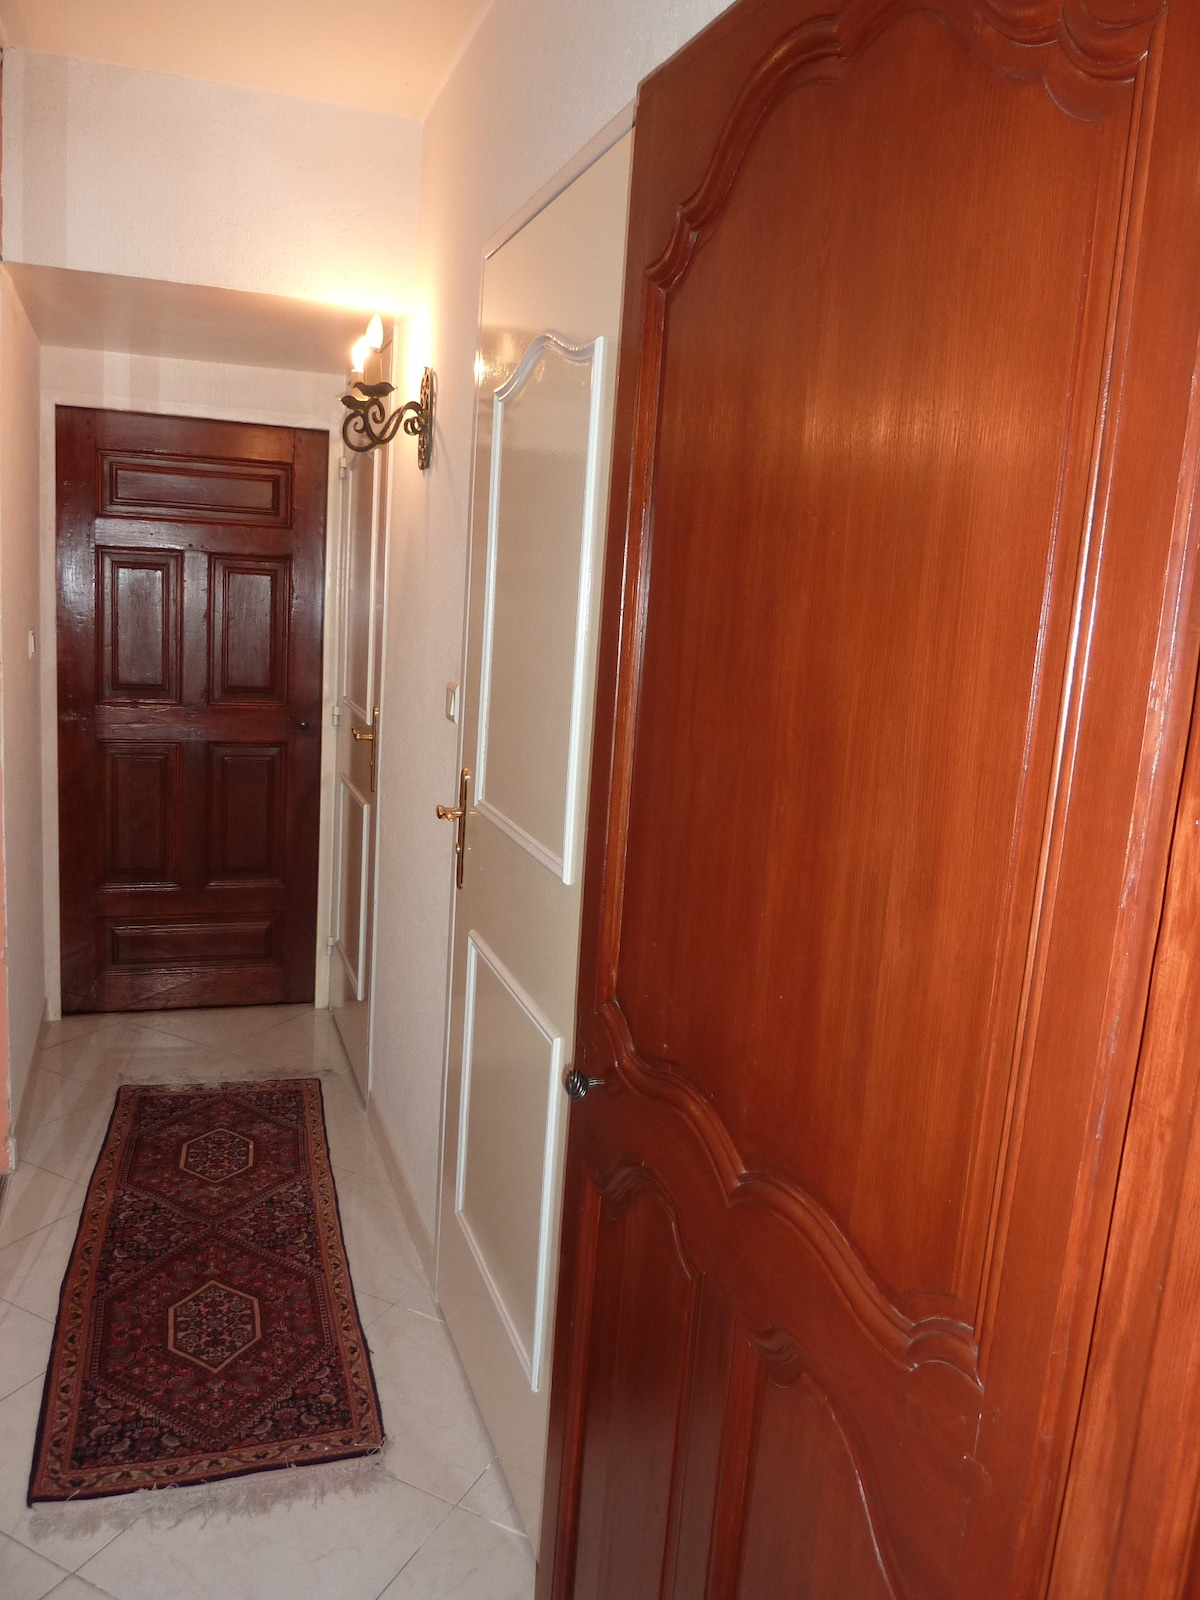 Your private corridor with 3 doors : Bathroom, Toilet and Bedroom # 1 at the end of the corridor